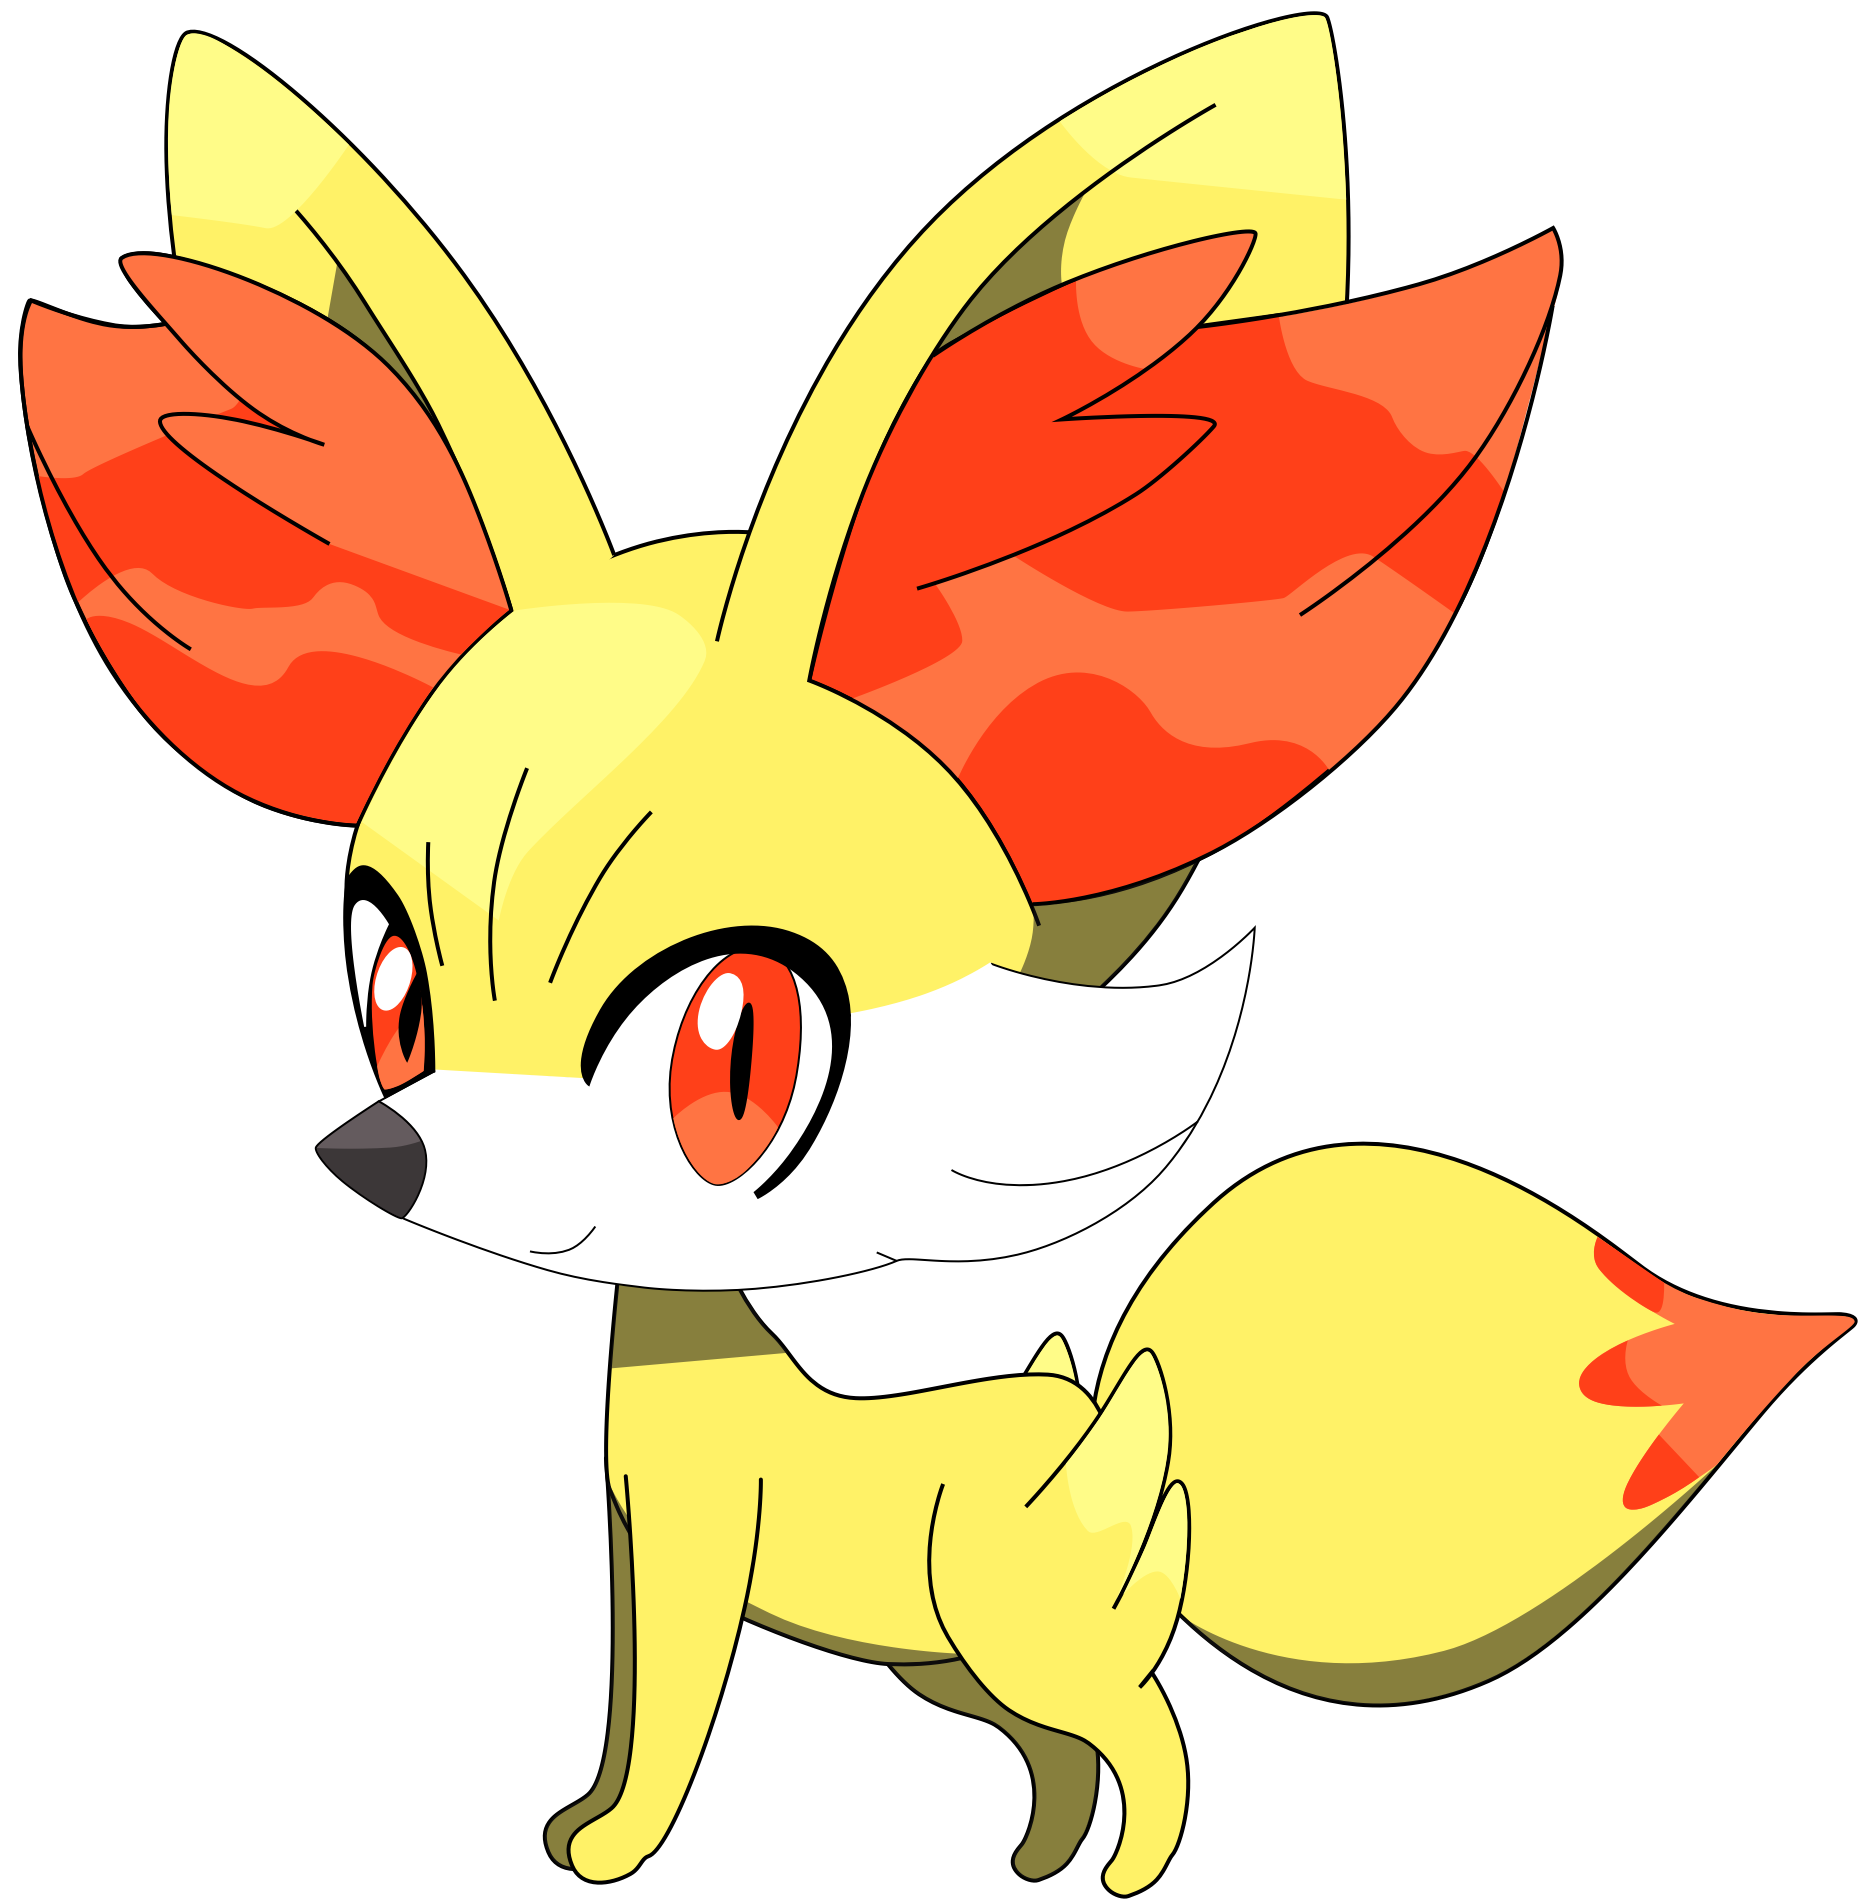 flutterflyraptor my first vector of fennekin by flutterflyraptor